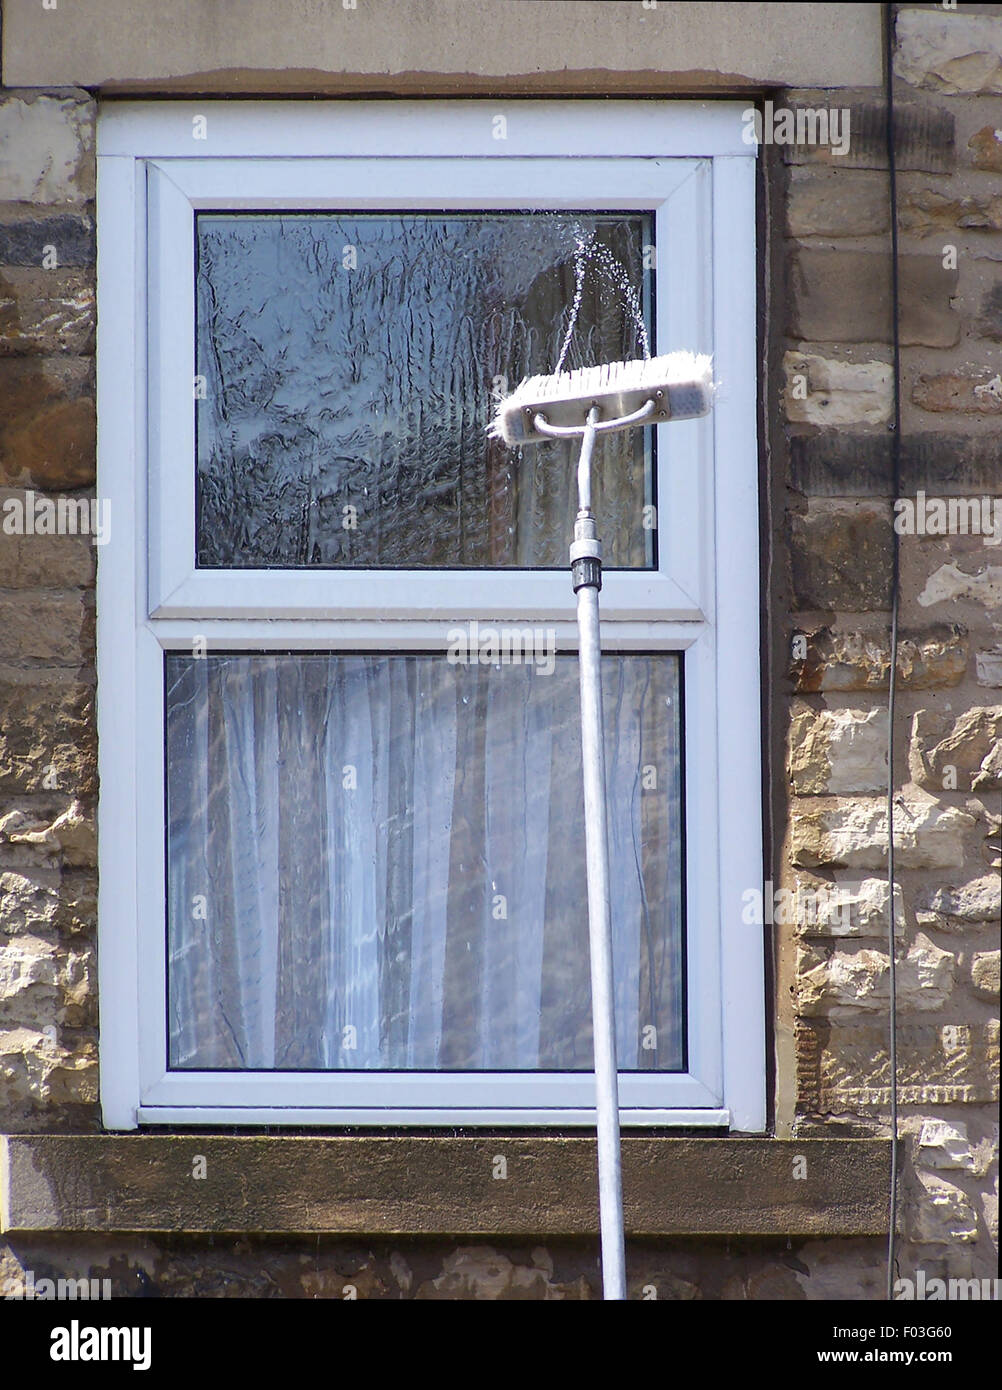 Window cleaning brush squirts water onto window - Stock Image